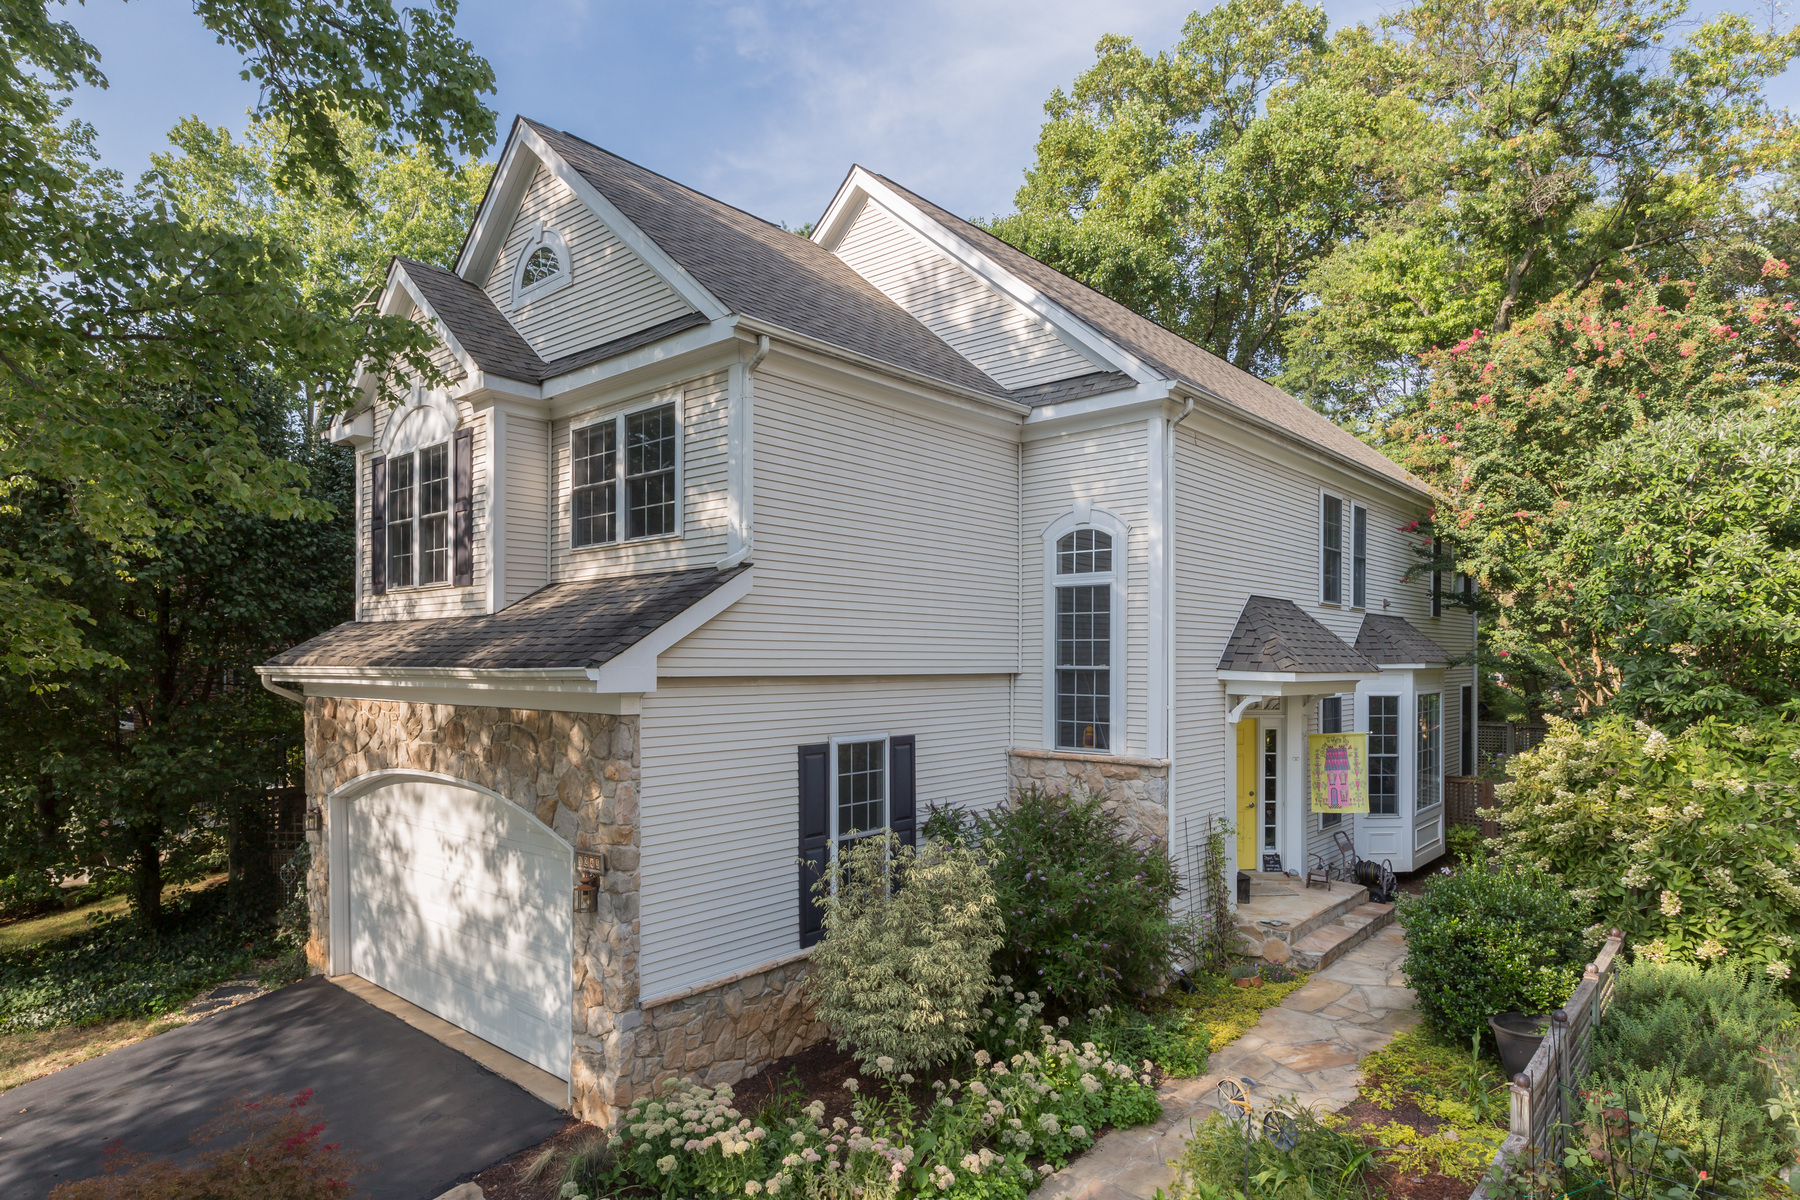 Single Family Home for Sale at 1245 Beverly Road, Mclean 1245 Beverly Rd McLean, Virginia, 22101 United States